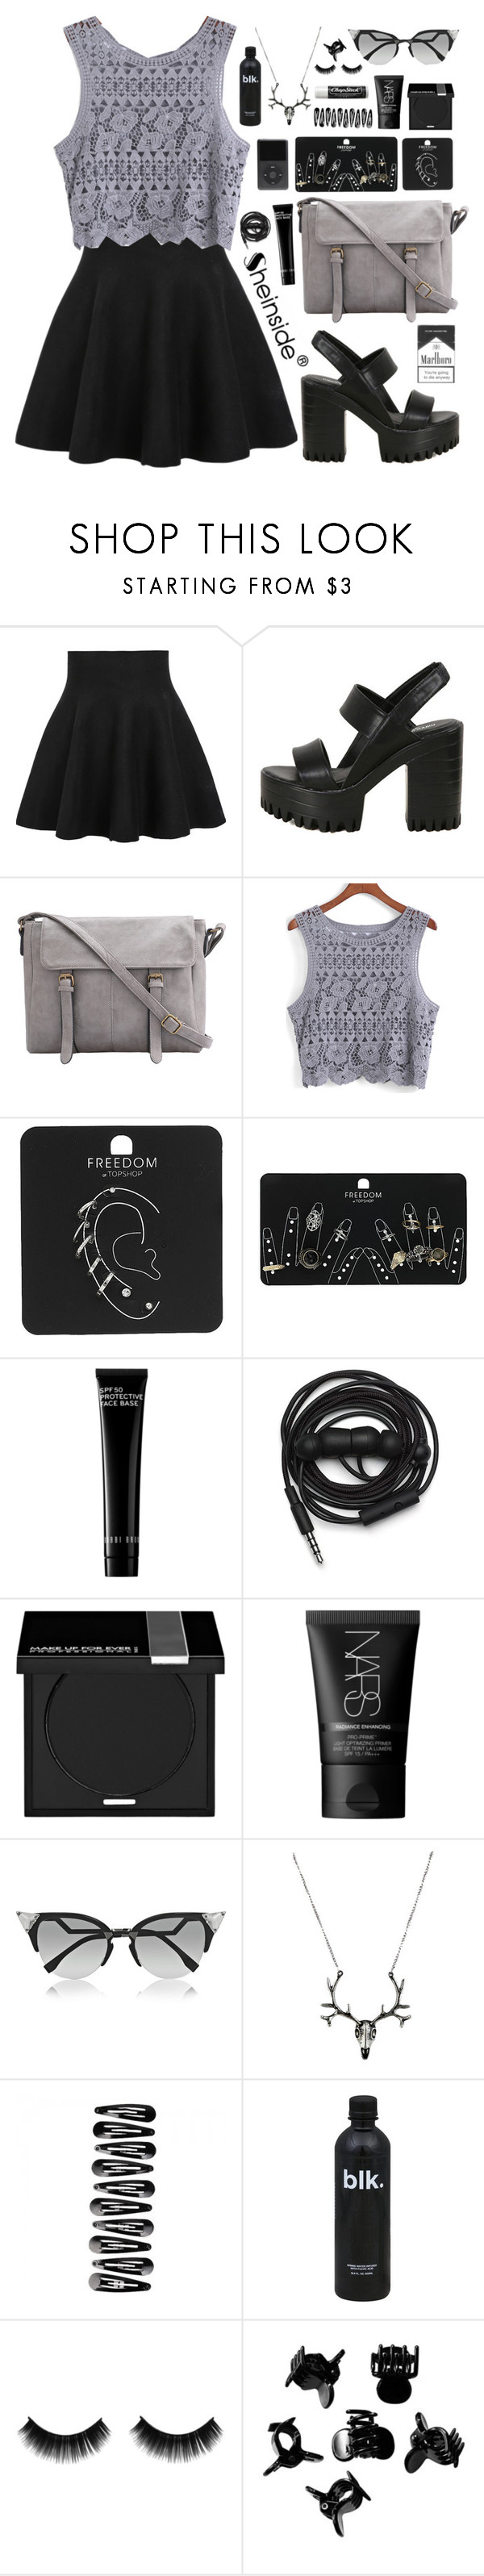 """""""SheIn 6"""" by scarlett-morwenna ❤ liked on Polyvore featuring Topshop, Bobbi Brown Cosmetics, Urbanears, MAKE UP FOR EVER, NARS Cosmetics, Fendi, Chapstick and H&M"""